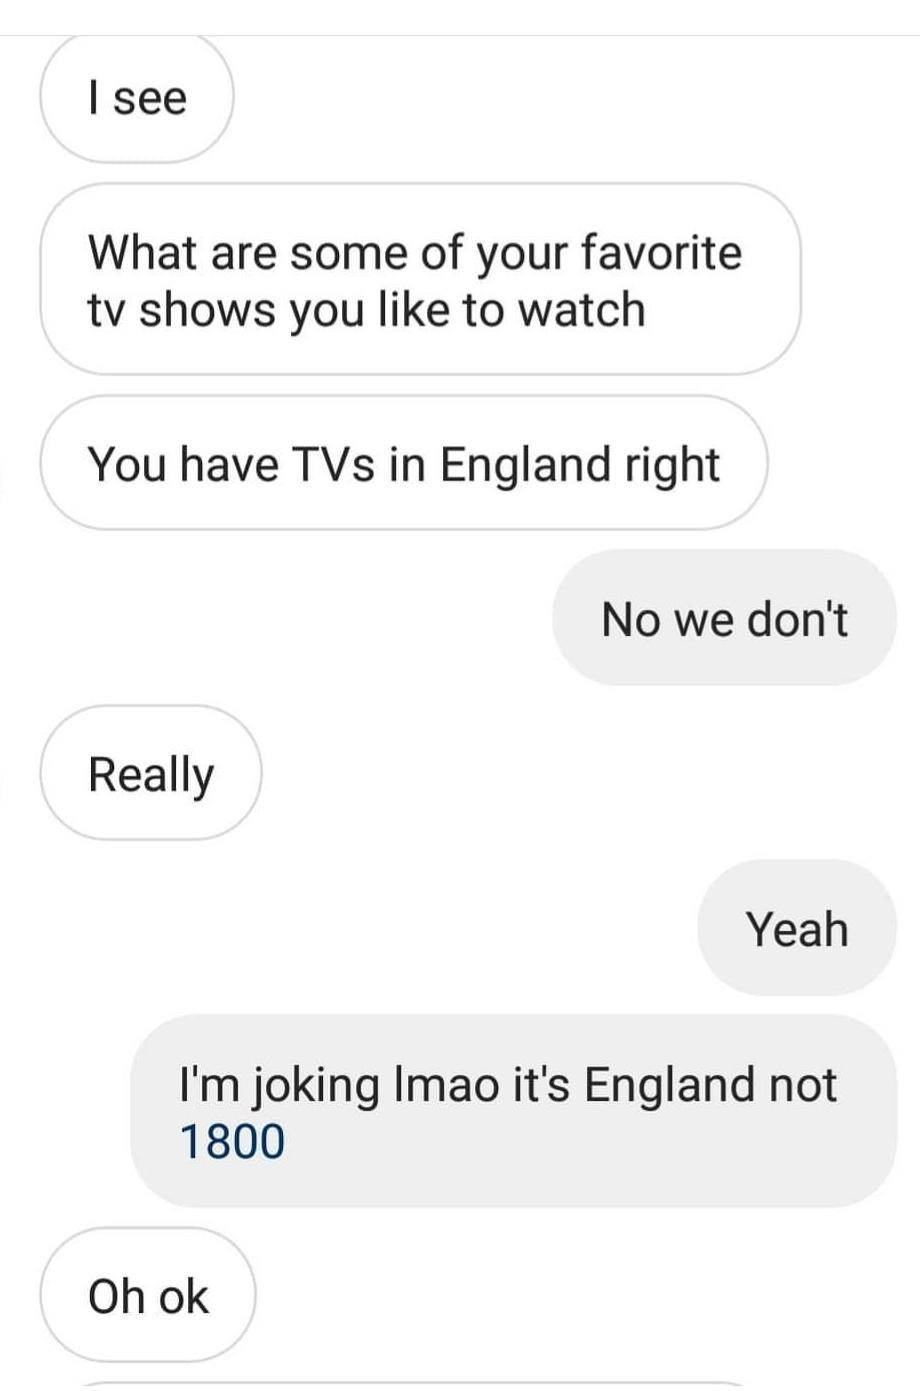 Discussion between two people where one asks if they have TVs in England